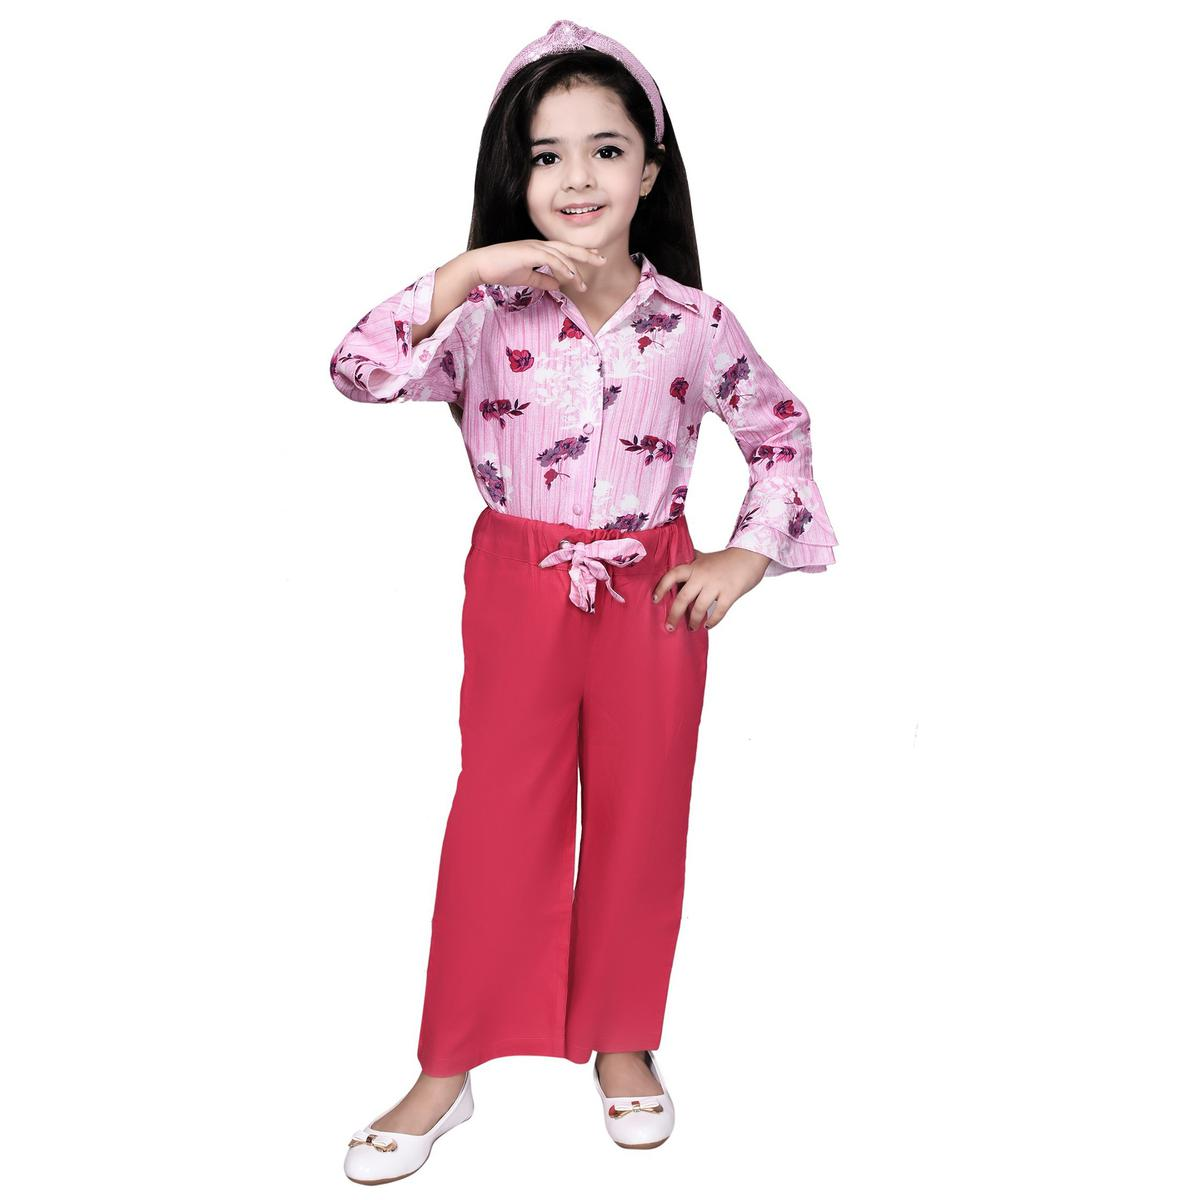 Titrit - Casual Wear Pink Floral Printed Cotton Shirt And Palazzo Set